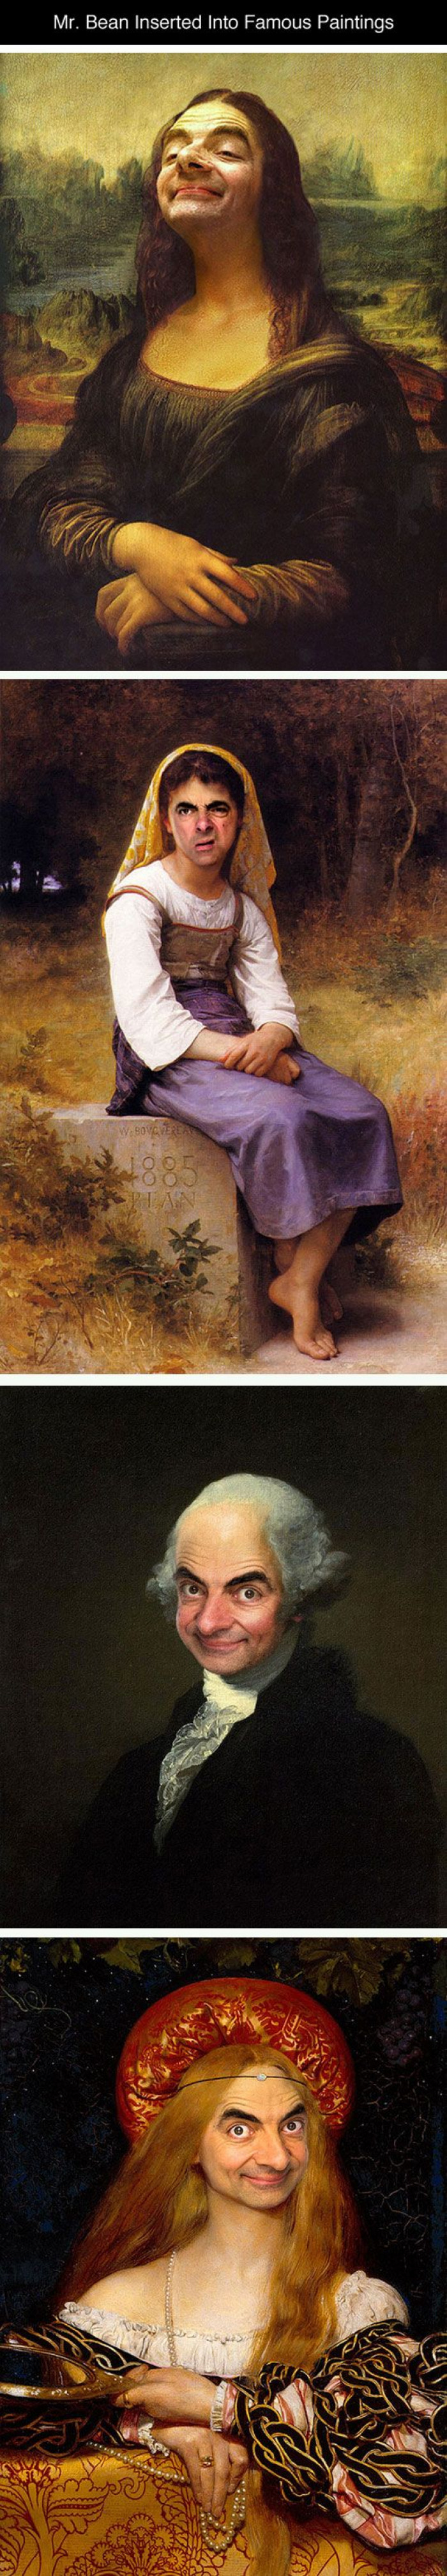 Mr. Bean Inserted Into Famous Paintings